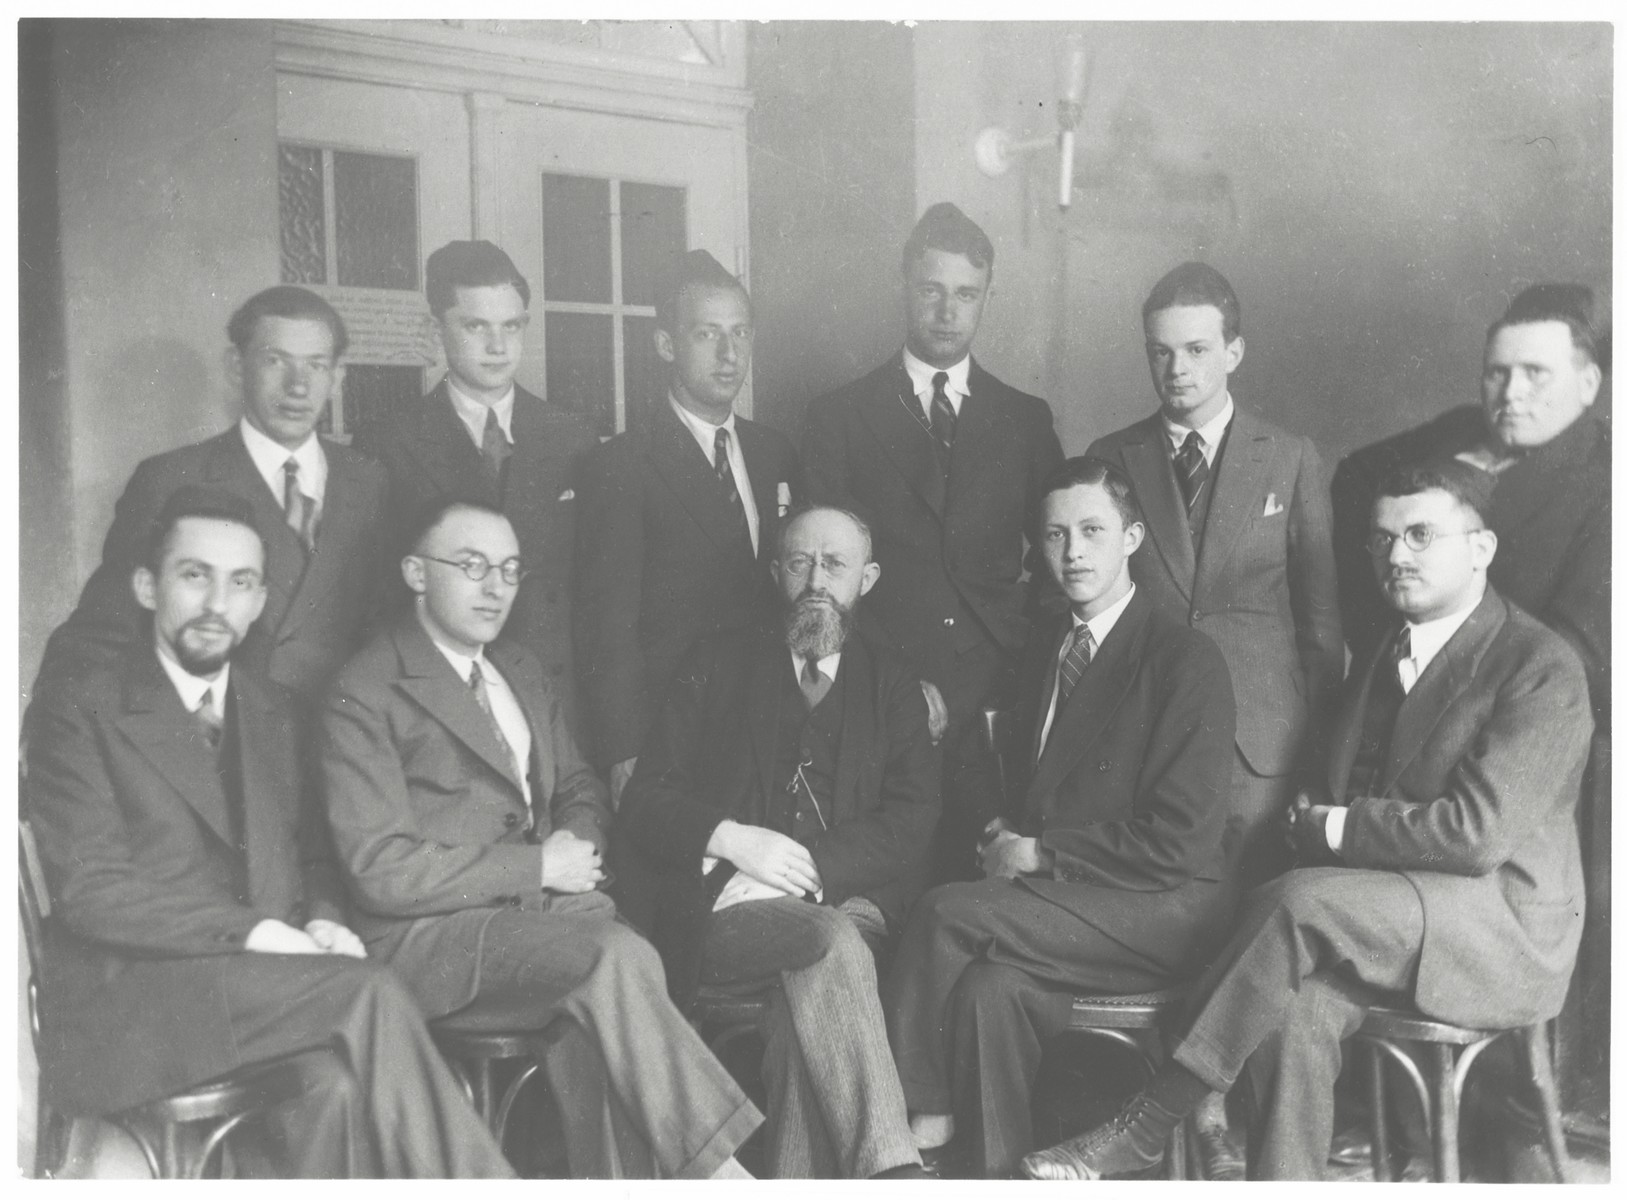 Members of the Jewish Council in Kiel.  Rabbi Baruch Posner is in the front center.